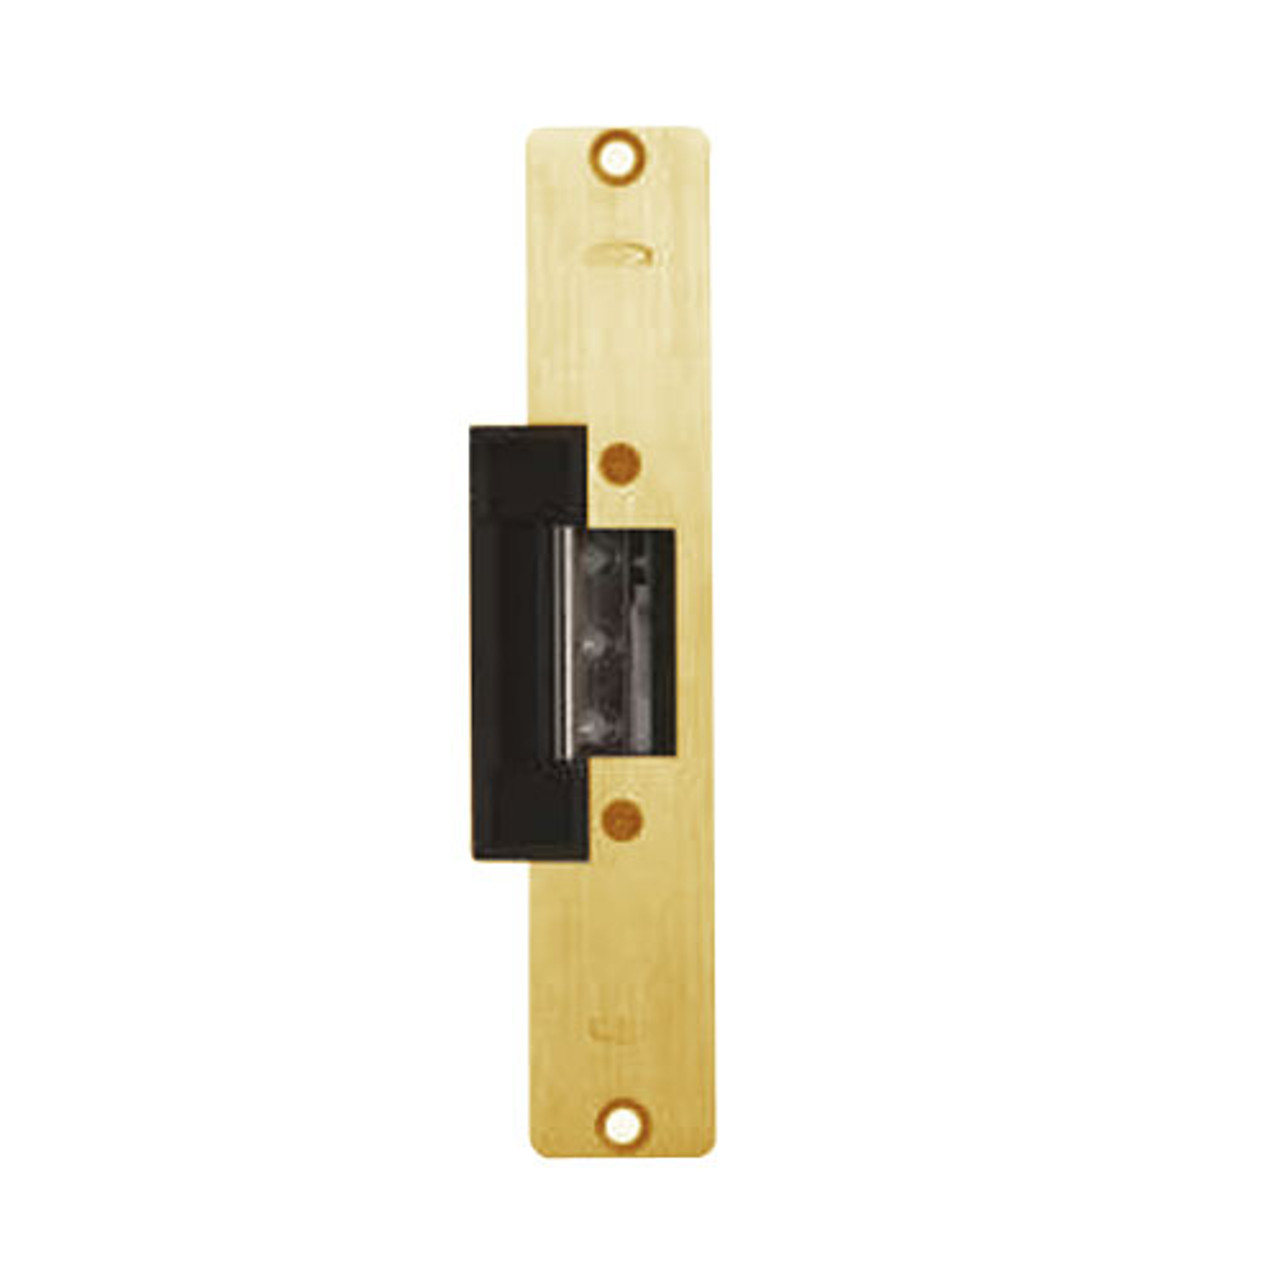 2678-RS-US10-12DC Trine Light Commercial Adjustable 2000 Series Fail Safe Electric Strikes in Satin Bronze Finish